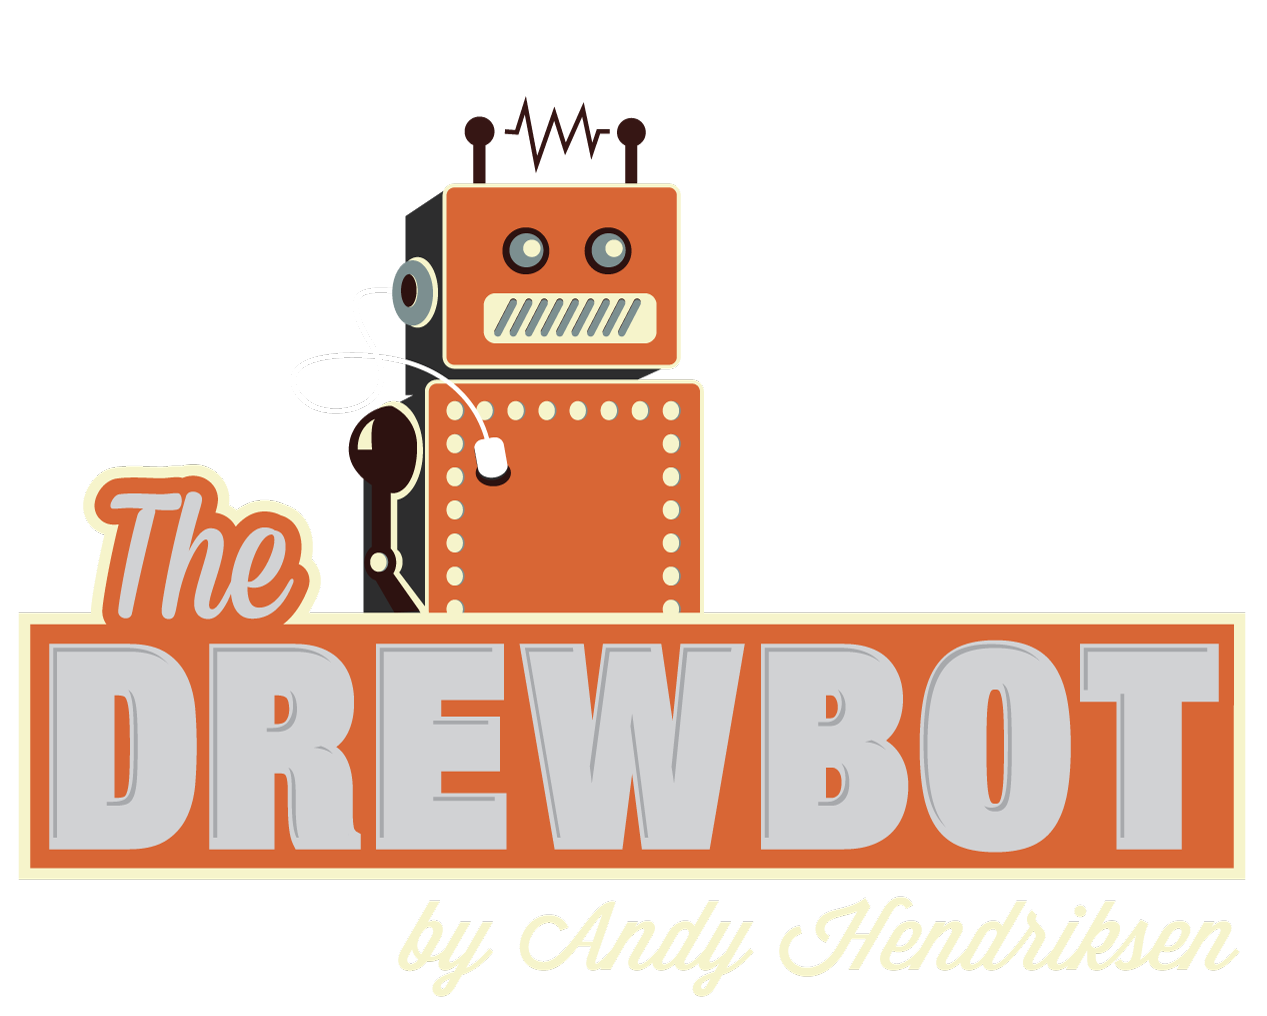 THE DREWBOT